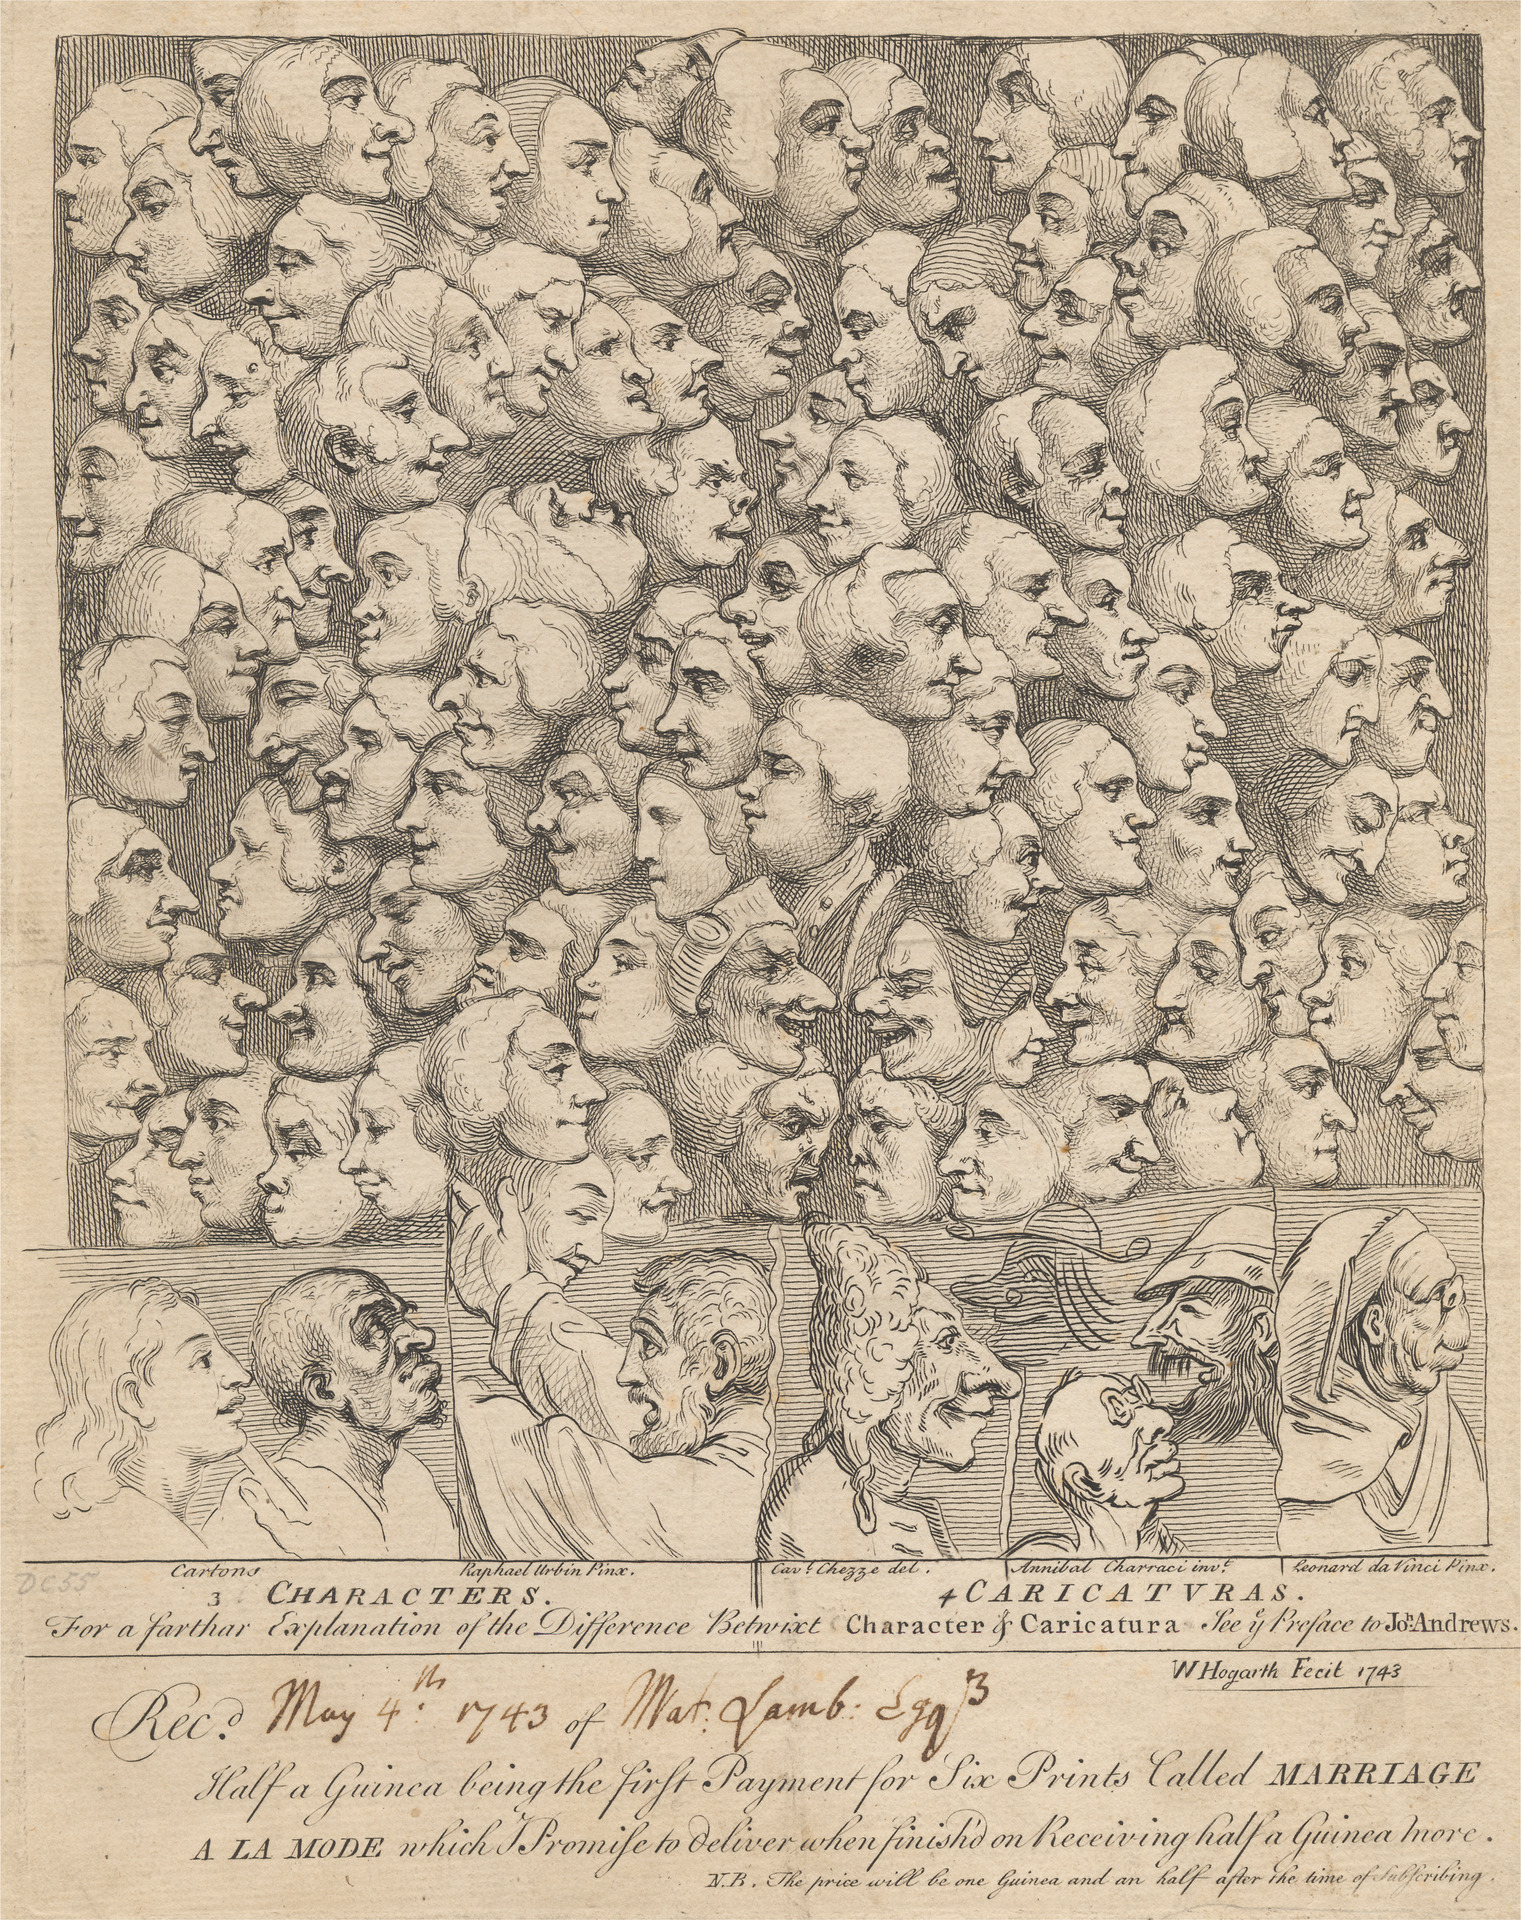 Characters and Caricatures:  subscription ticket for 'Marriage à la Mode' (1743).  William Hogarth.  Yale Center for British Art, Yale Art Gallery Collection, Gift of Chauncey B. Tinker, B.A.  1899.